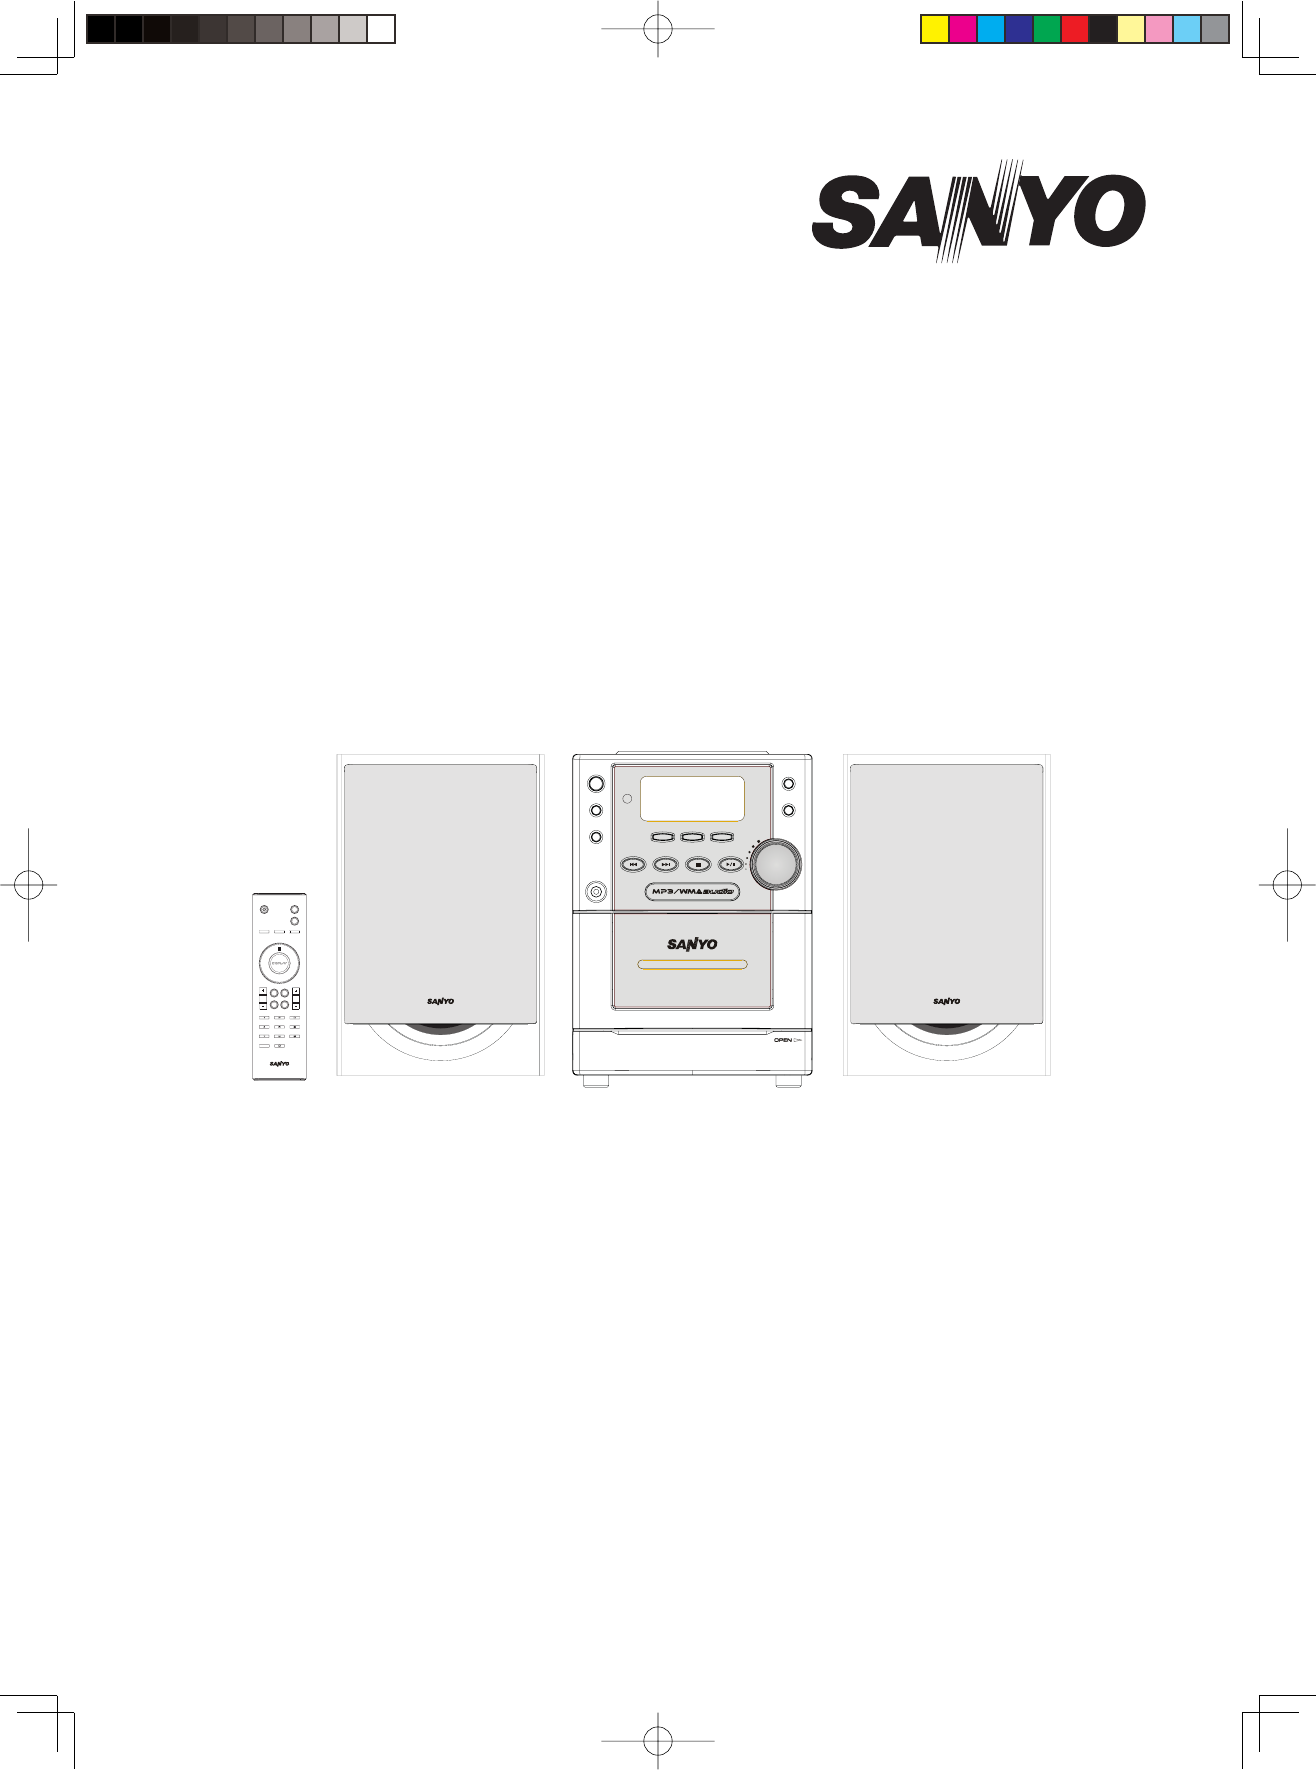 sanyo user manual daily instruction manual guides u2022 rh testingwordpress co sony owner manual download sony owner manuals free